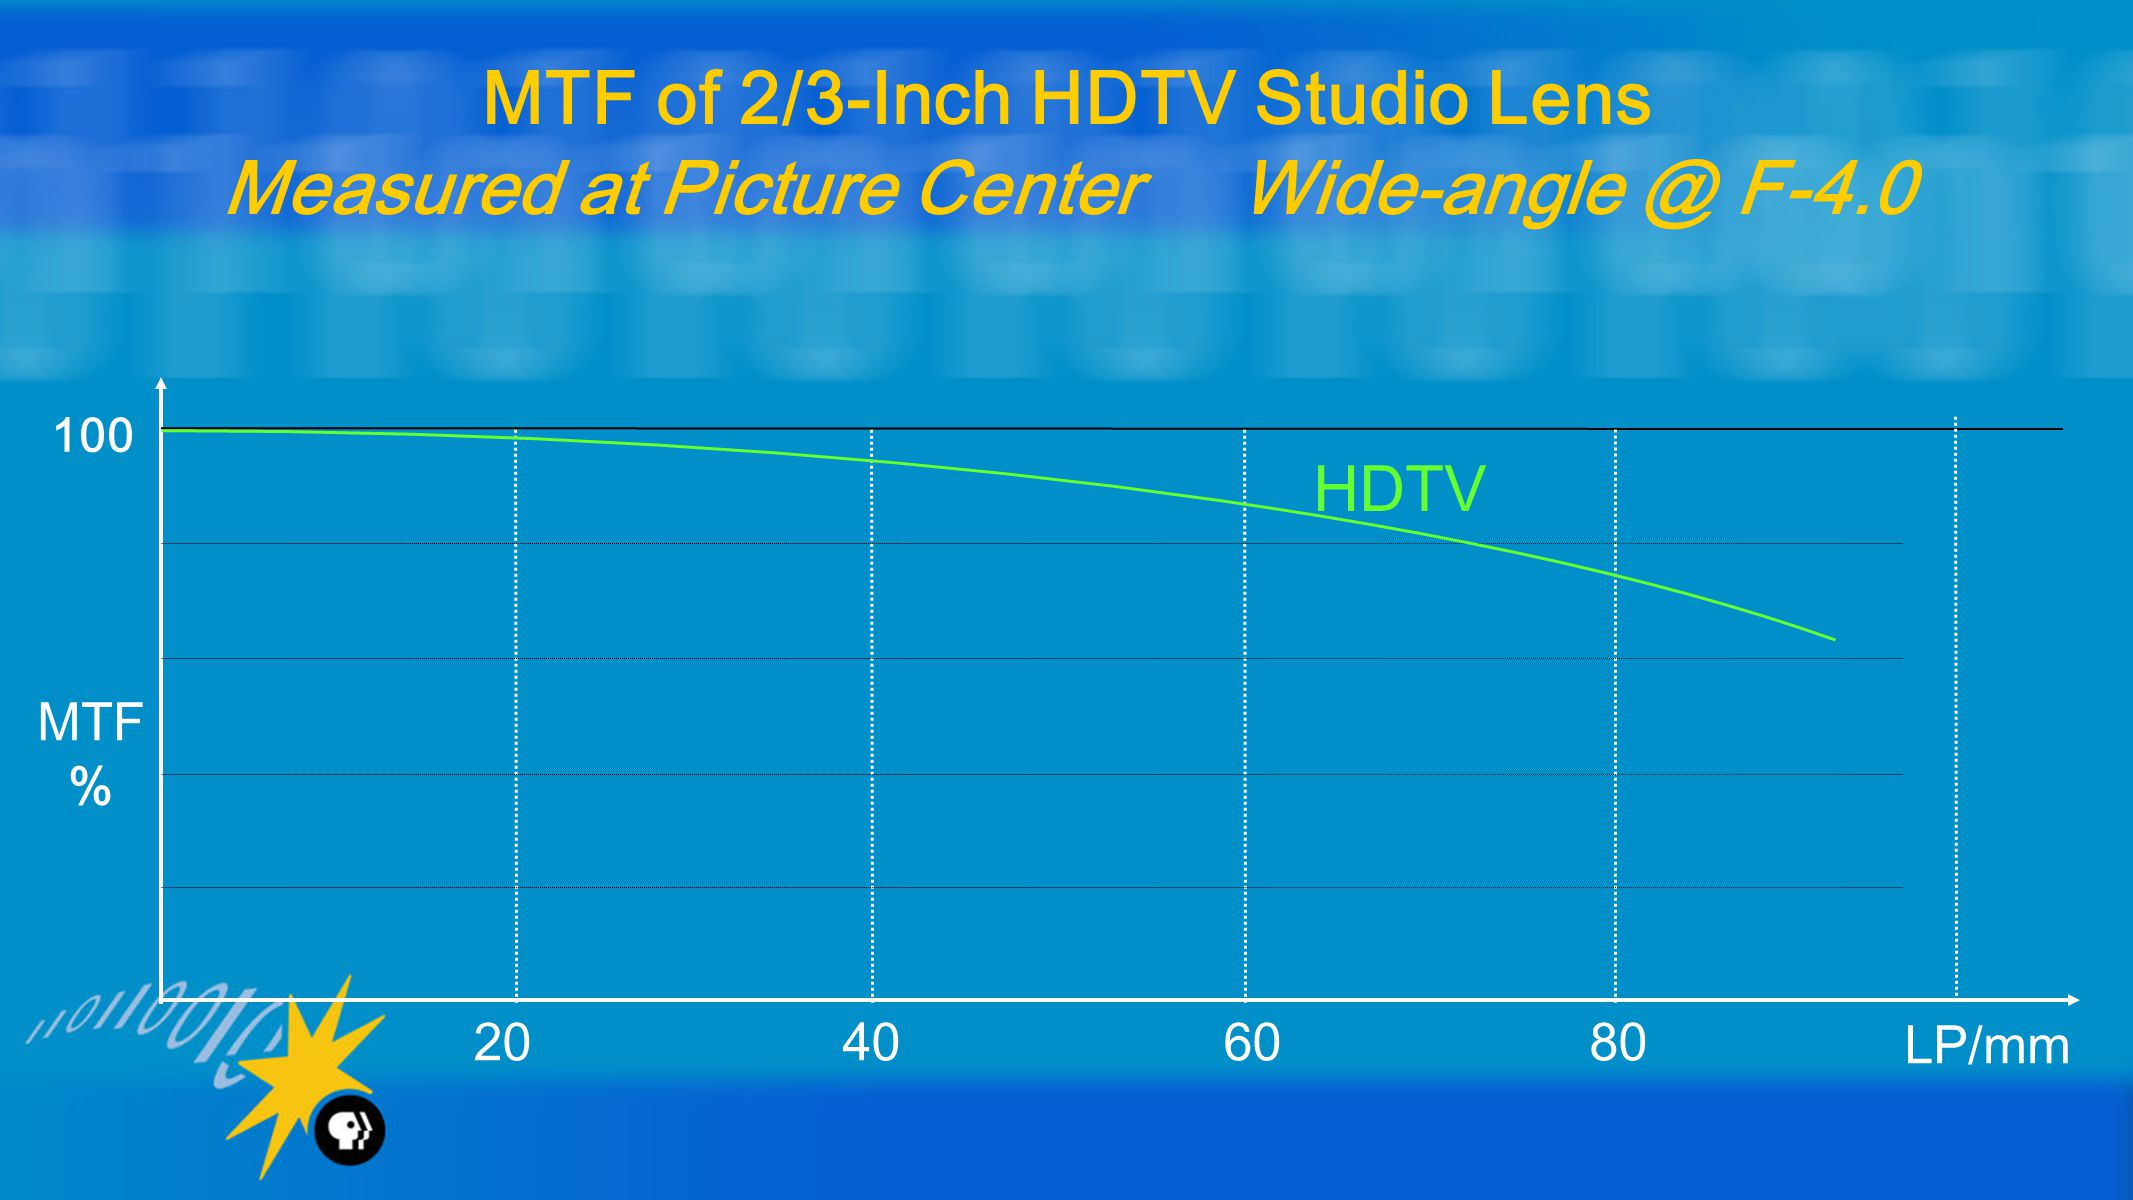 20 40 60 80 LP/mm 100 MTF % MTF of 2/3-Inch HDTV Studio Lens Measured at Picture Center Wide-angle @ F-4.0 HDTV